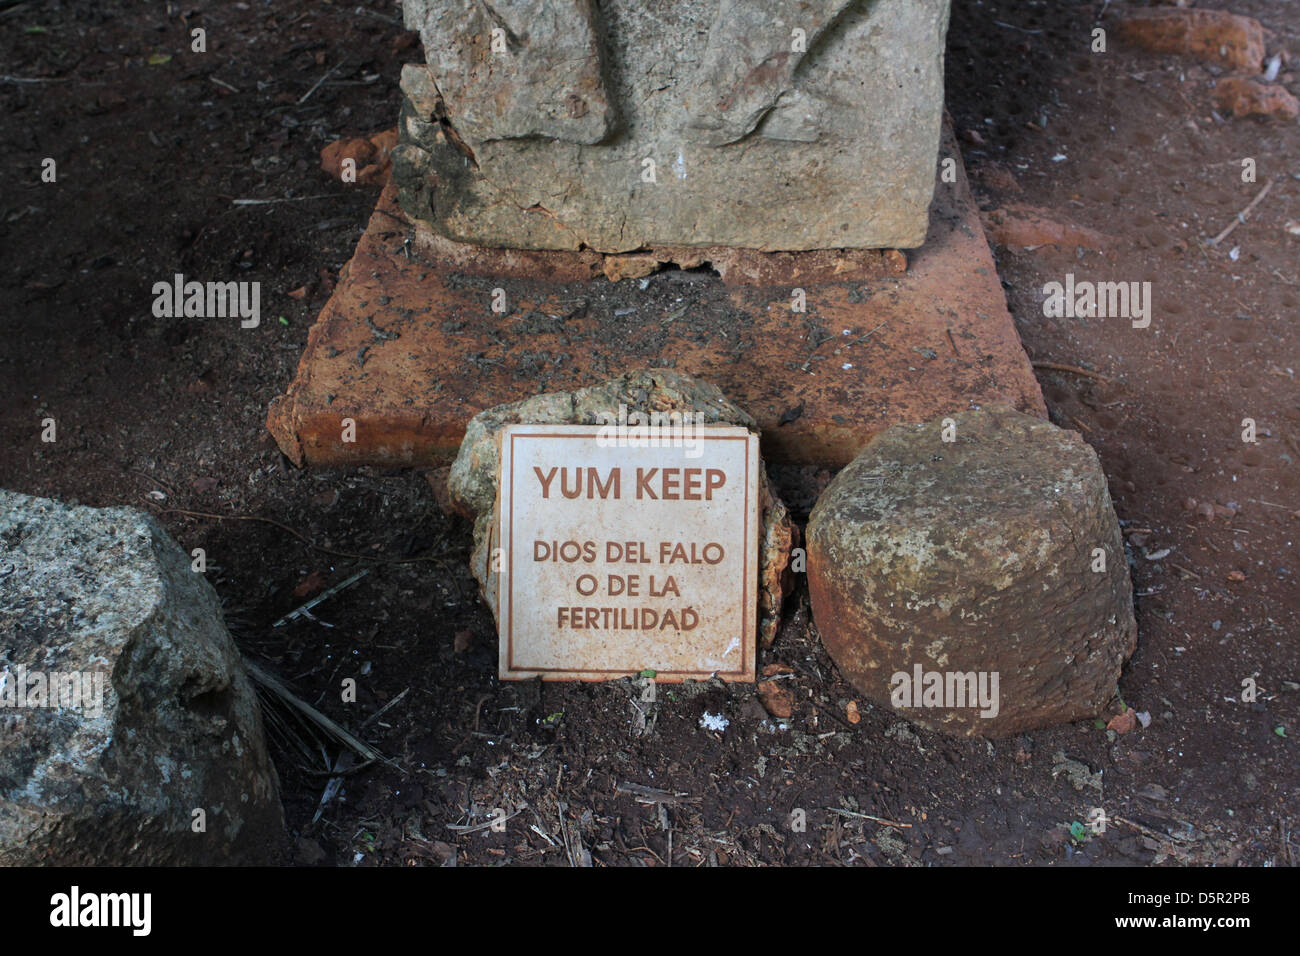 A sign underneath the Yum Keep fertility Goddess statue in Yucatan, Mexico. - Stock Image